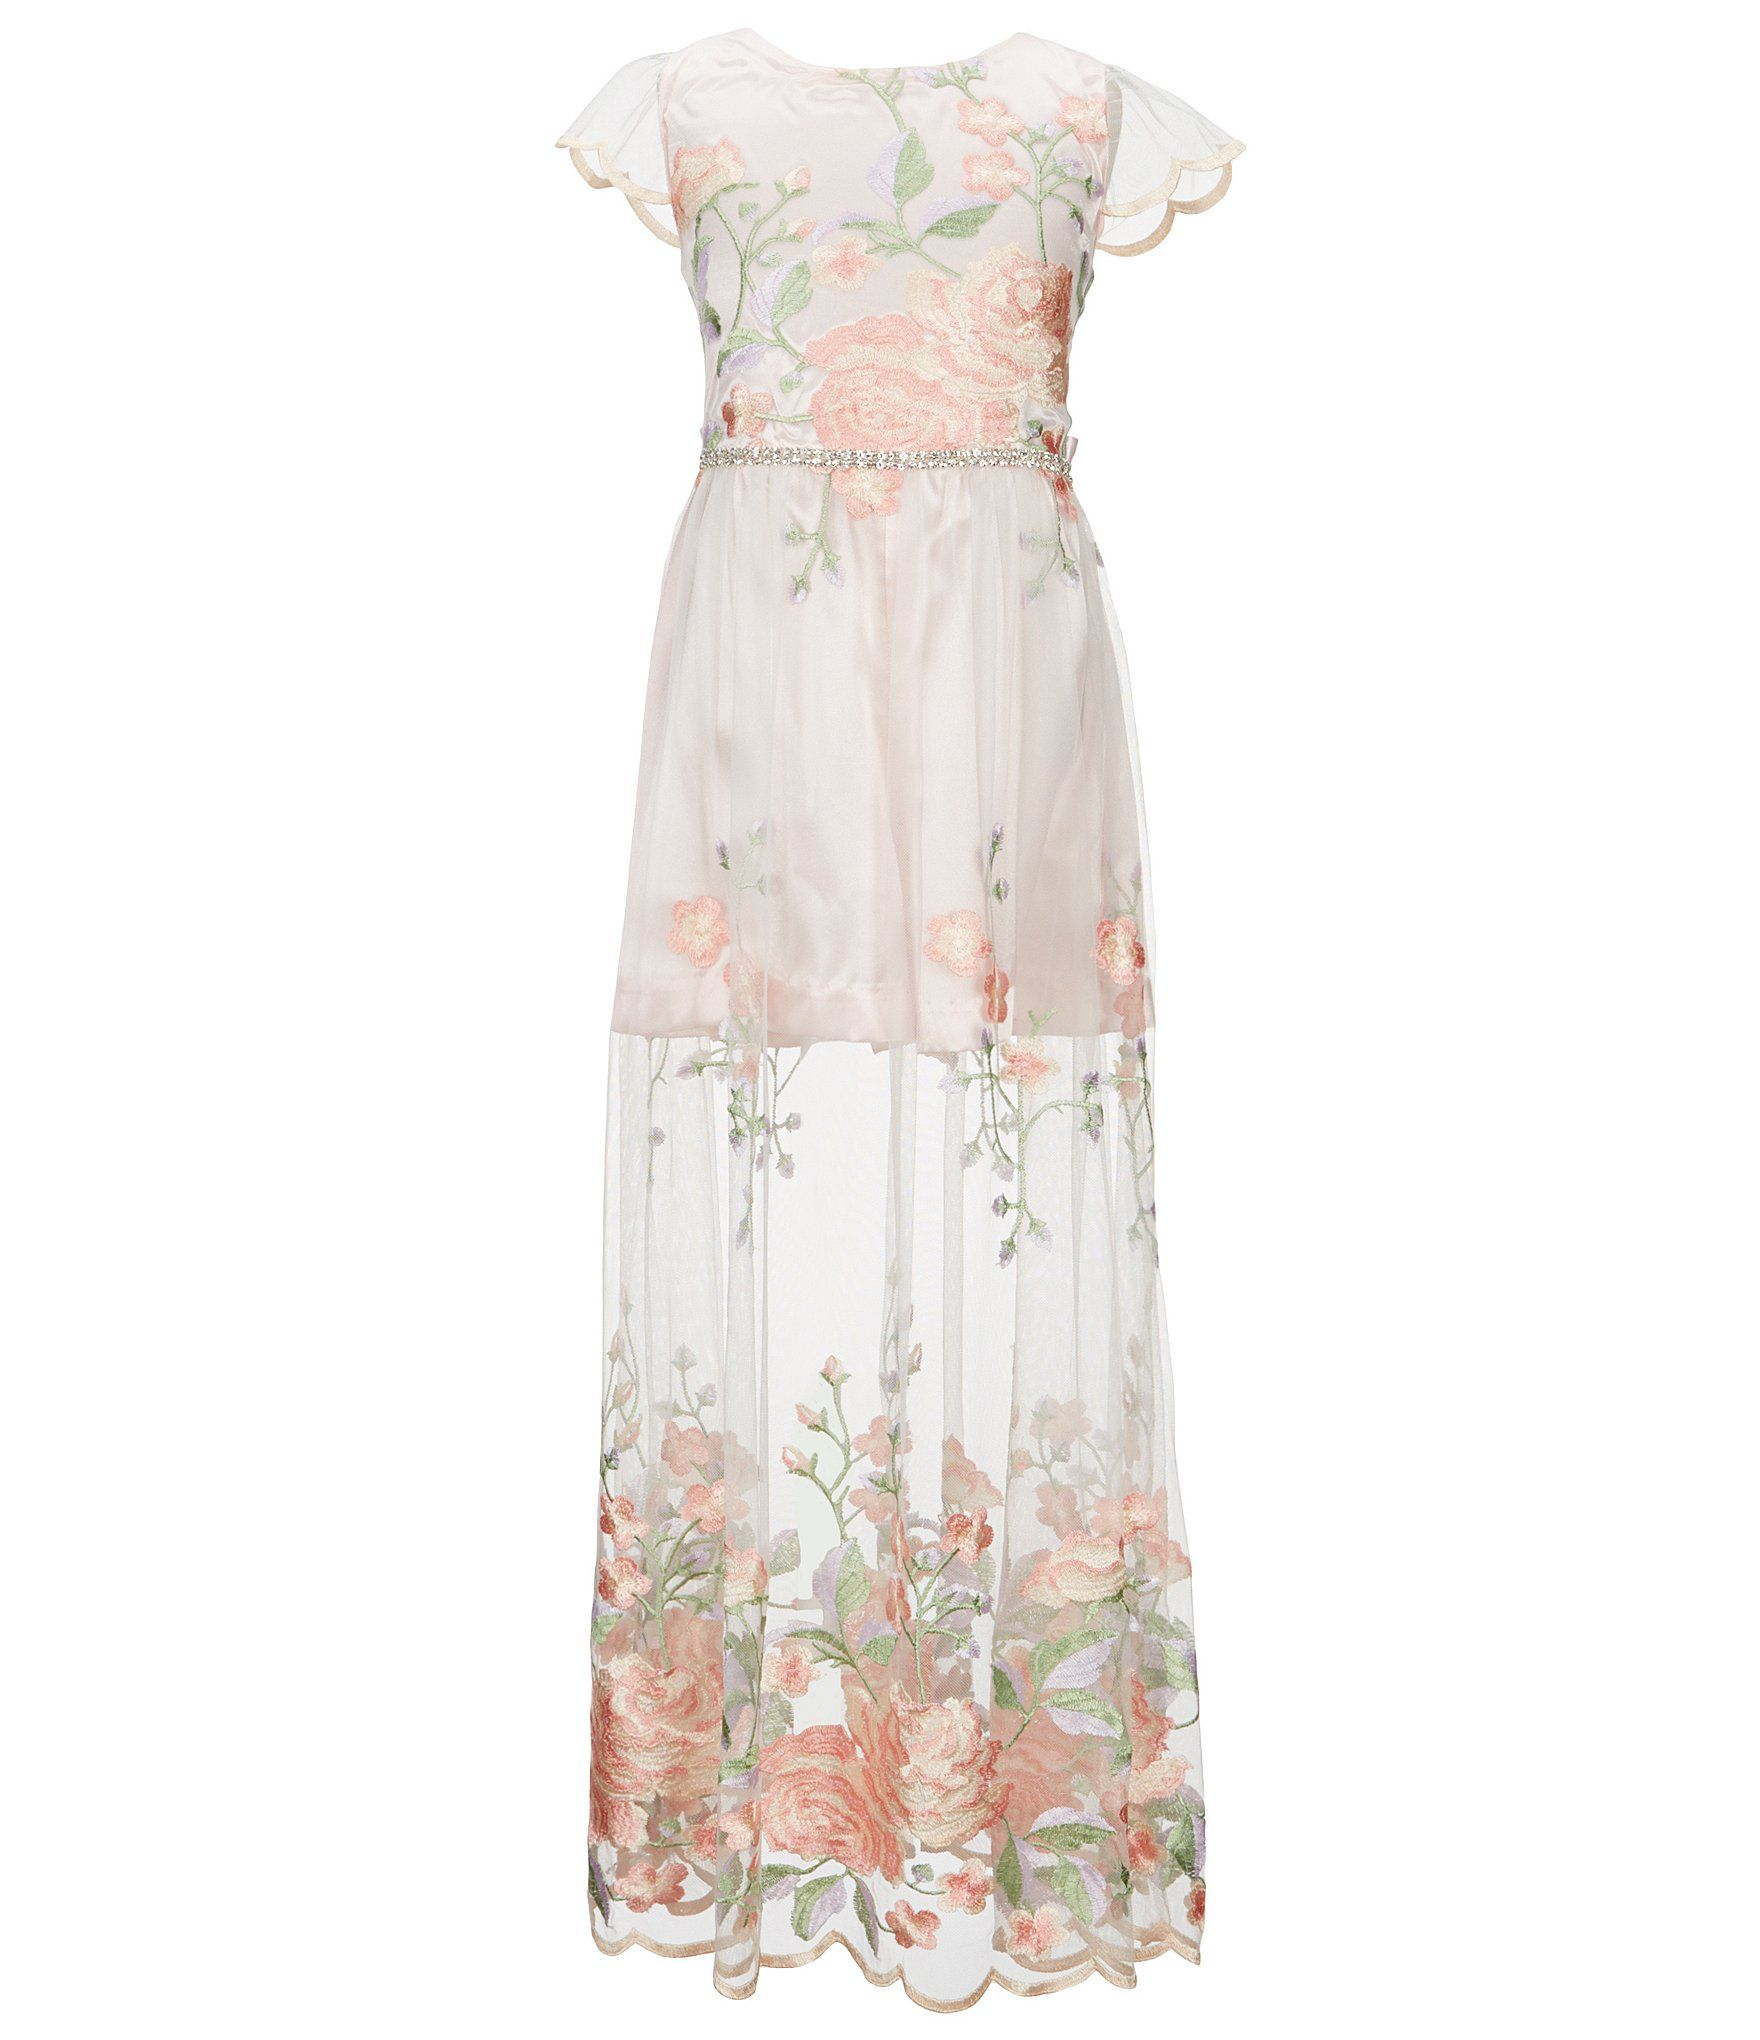 e5e84cd8b7c4 Shop for Rare Editions Little Girls 4-6X Floral-Embroidered Maxi Romper at  Dillards.com. Visit Dillards.com to find clothing